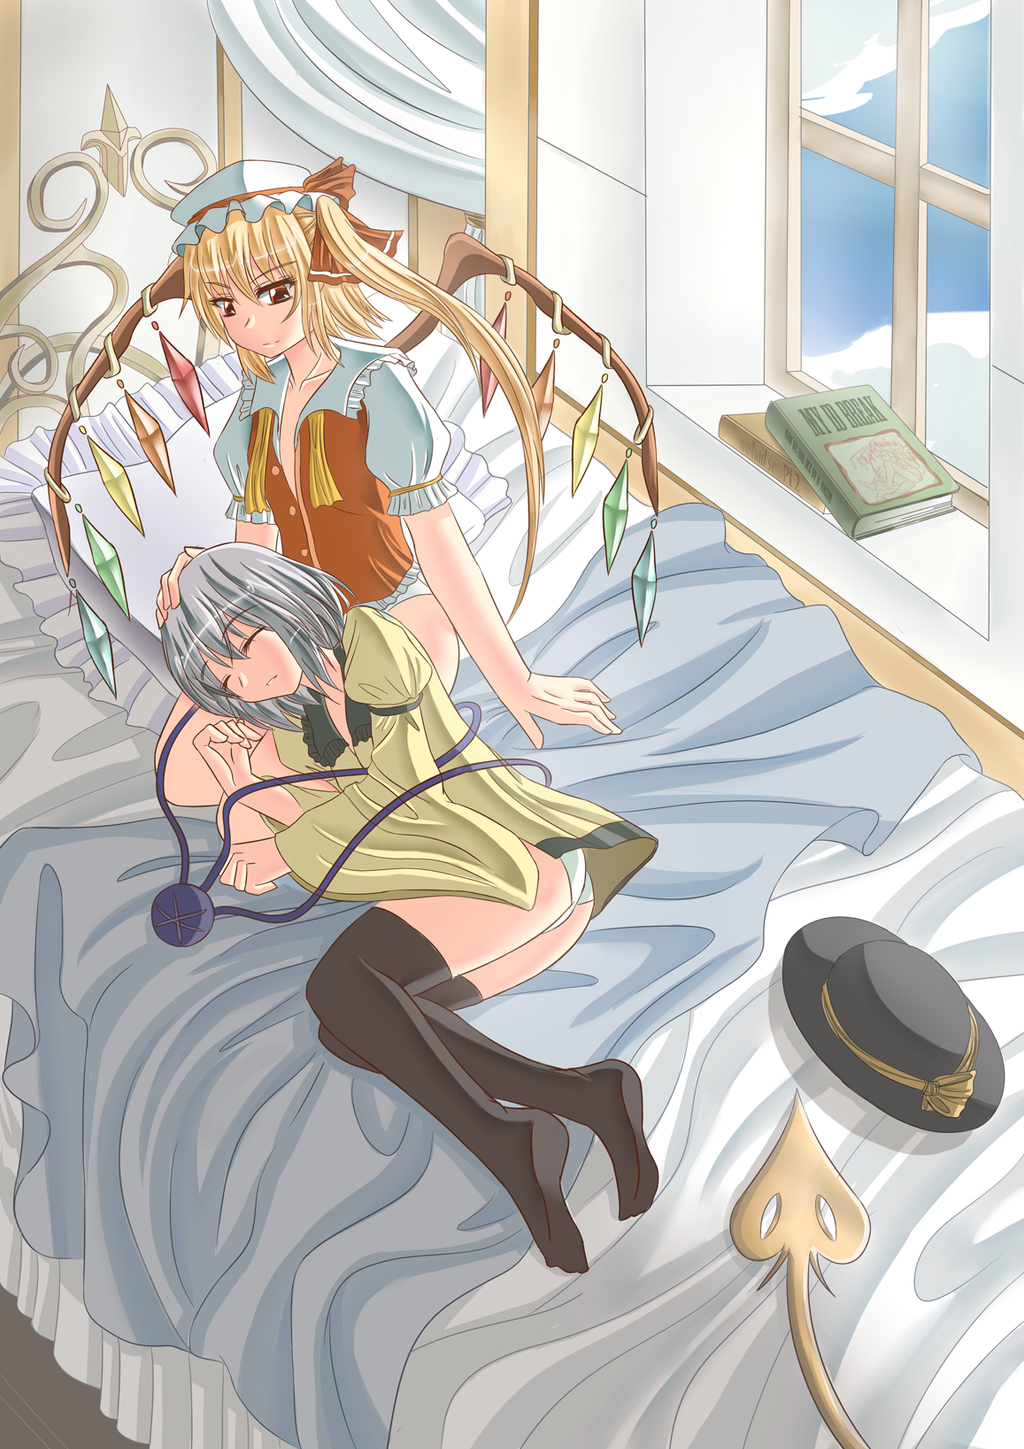 Touhou-together in the morning- by K-Nashi